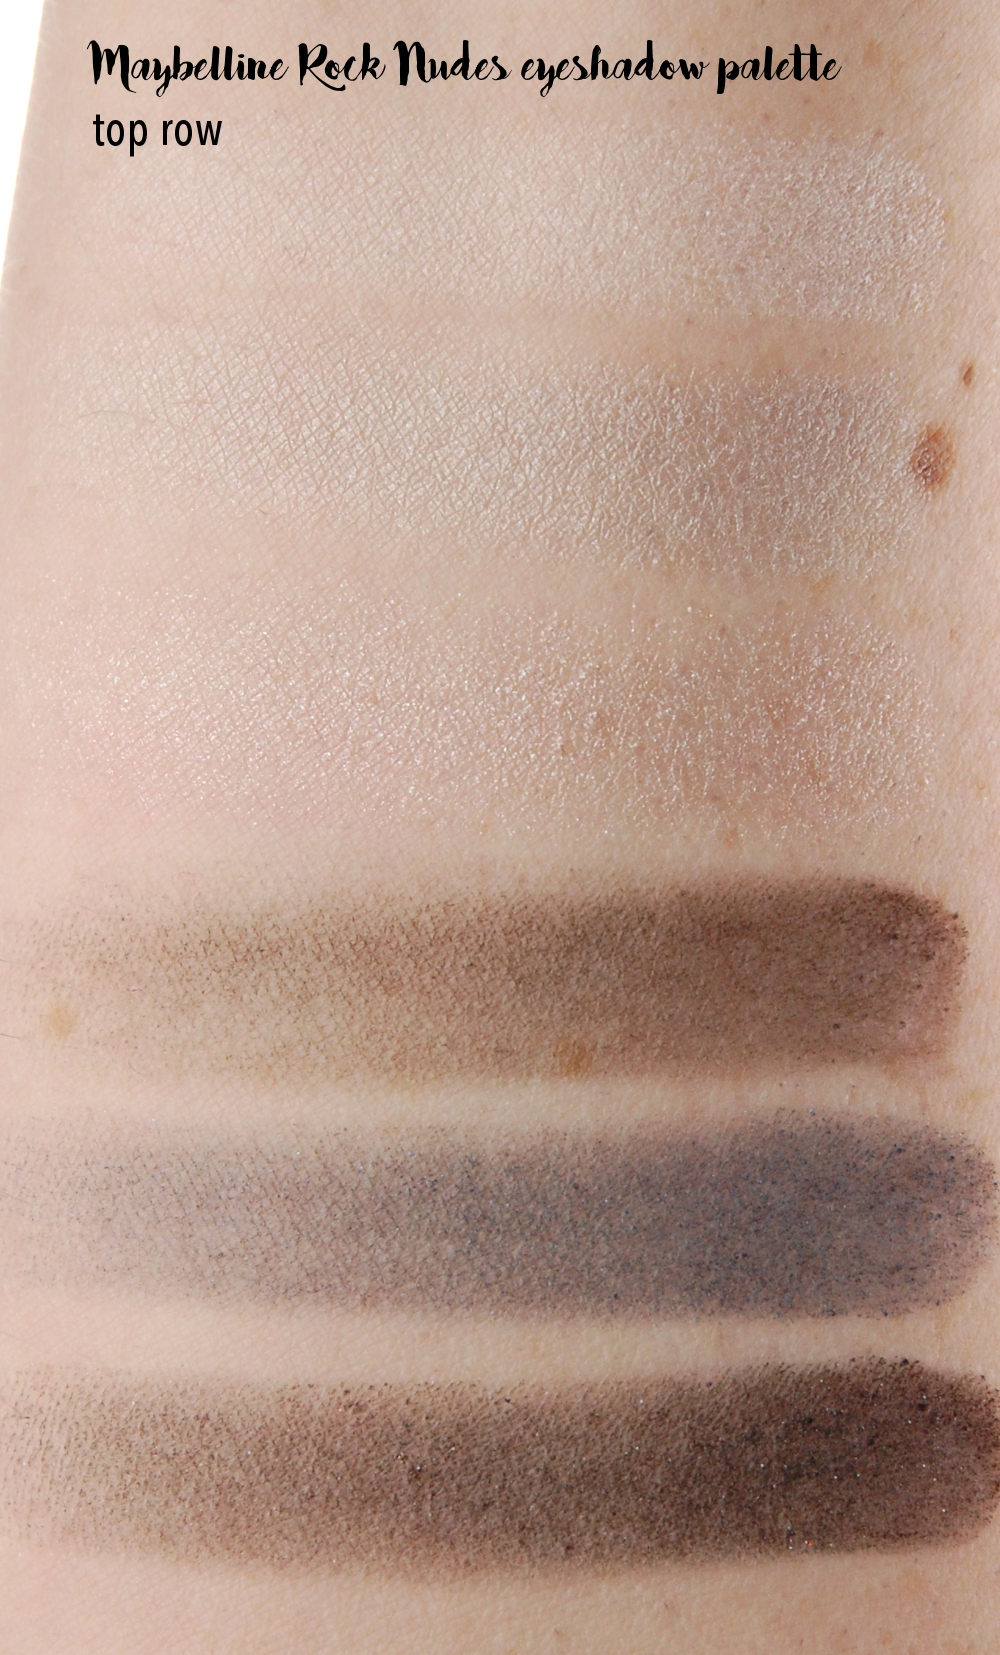 Maybelline Rock Nudes eyeshadow palette review swatches 1